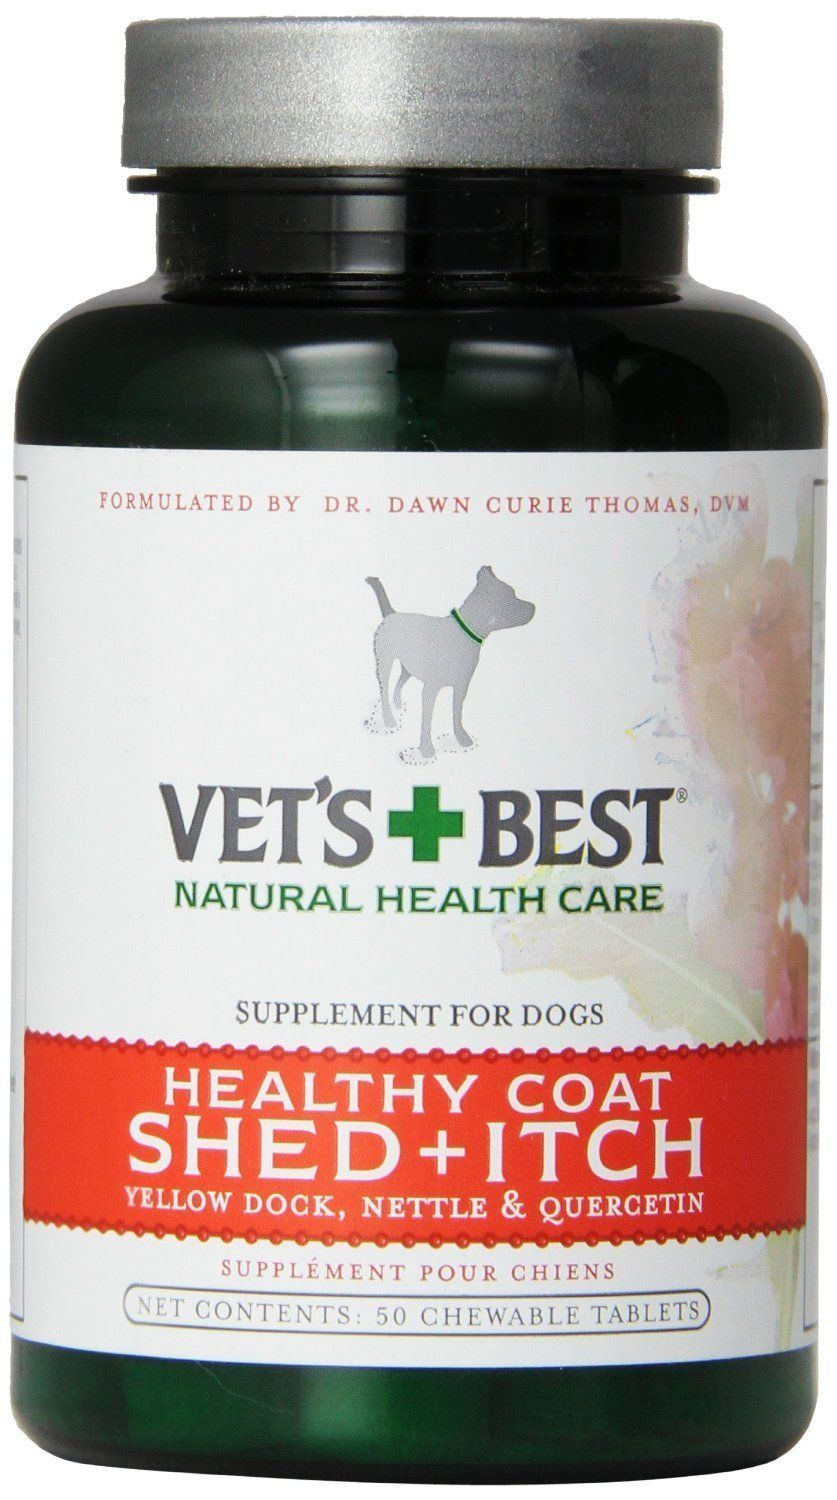 Veterinarian's Best Healthy Coat Shed and Itch Relief